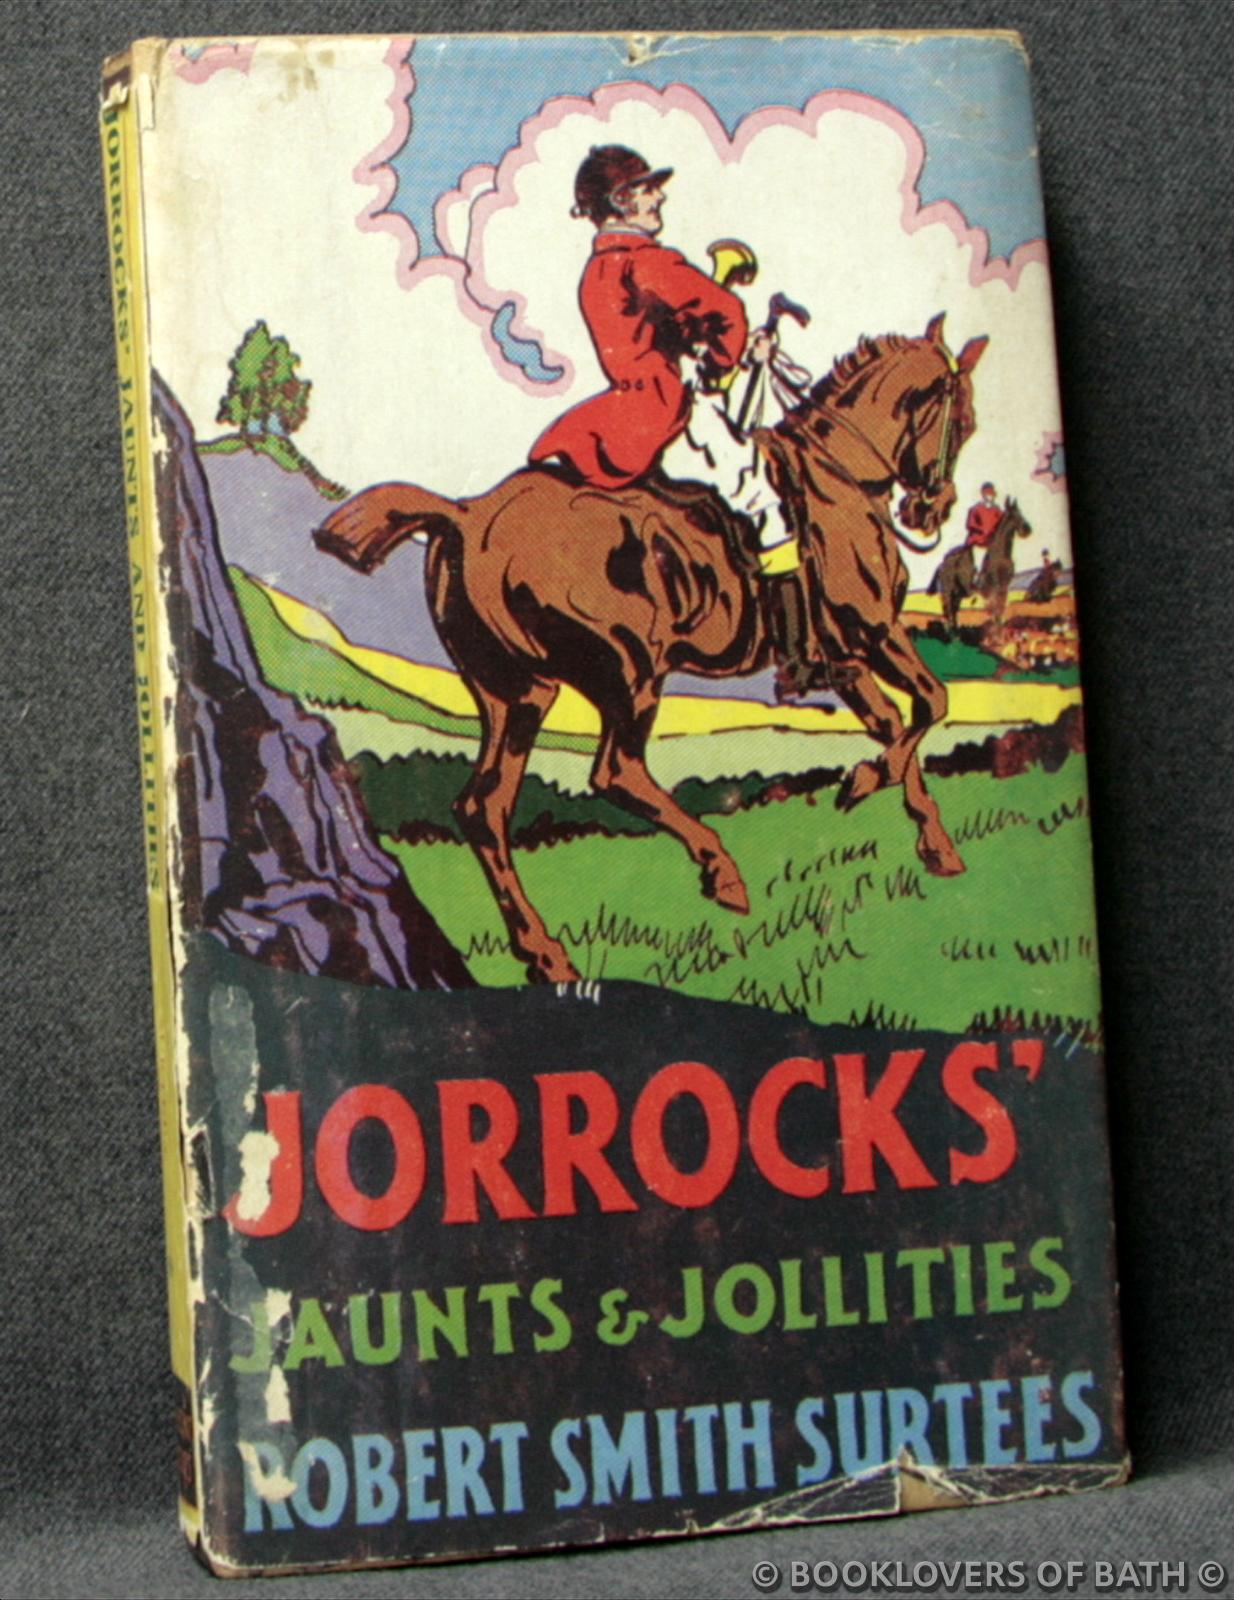 Jorrocks' Jaunts & Jollities - Rovert Smith Surtees